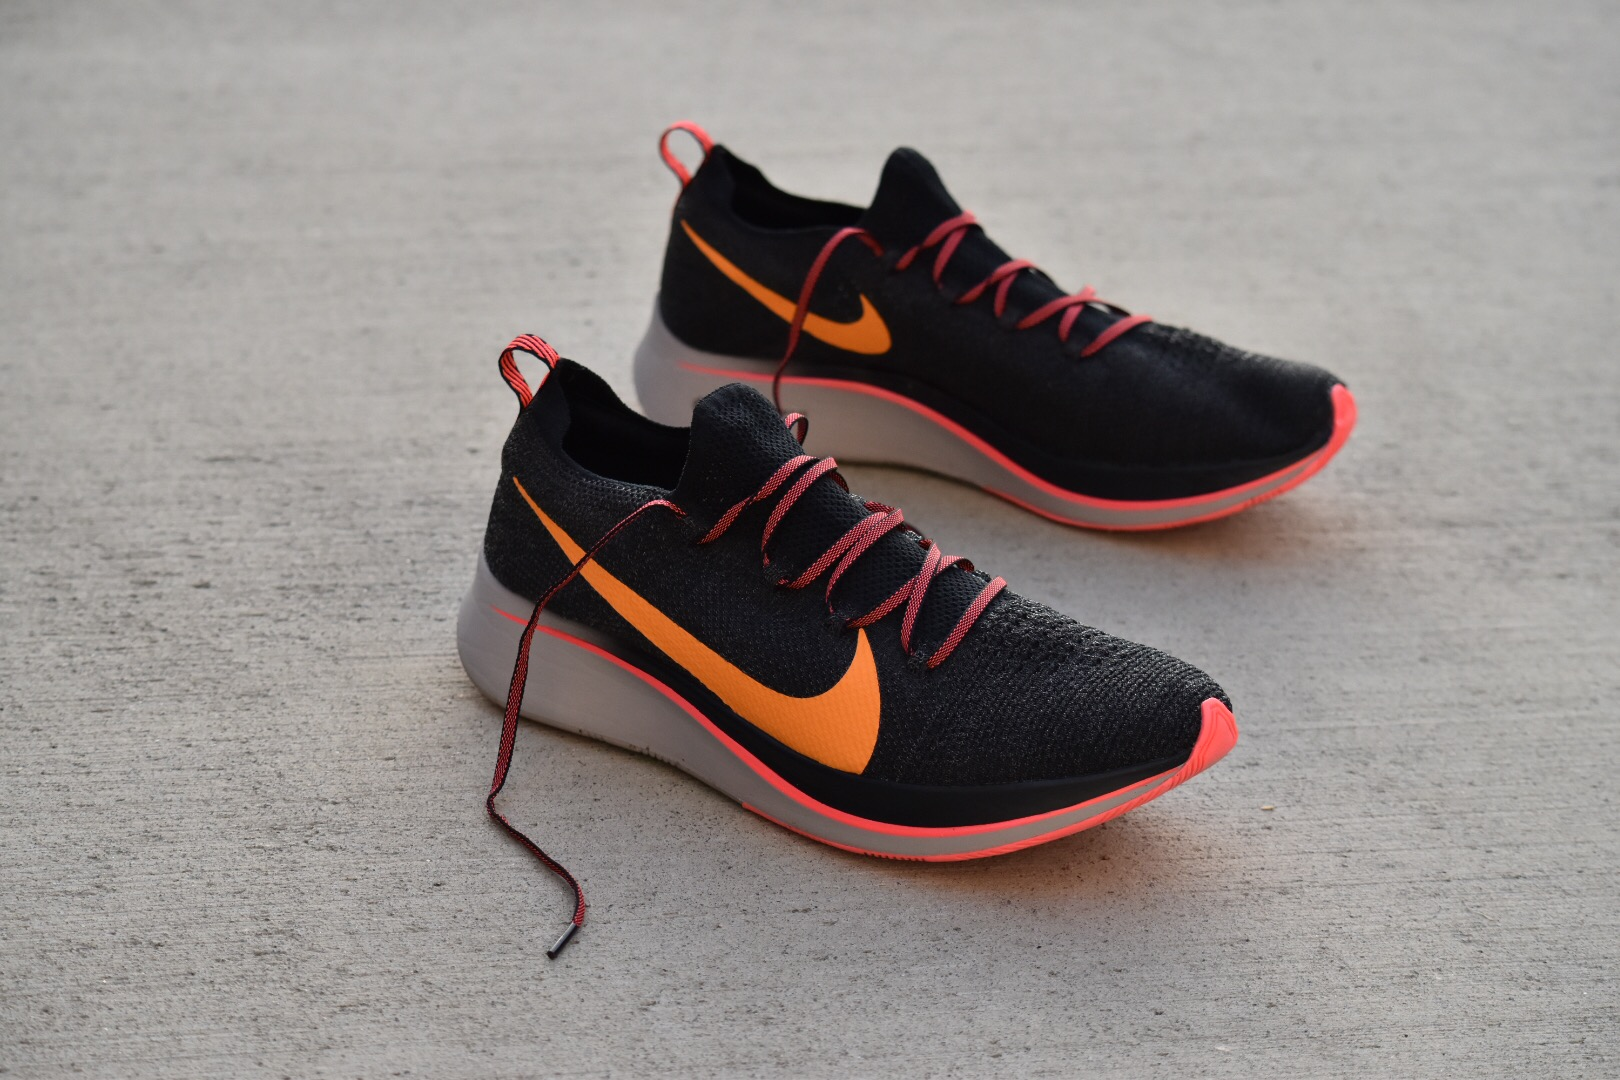 nike zoom fly flyknit first impressions